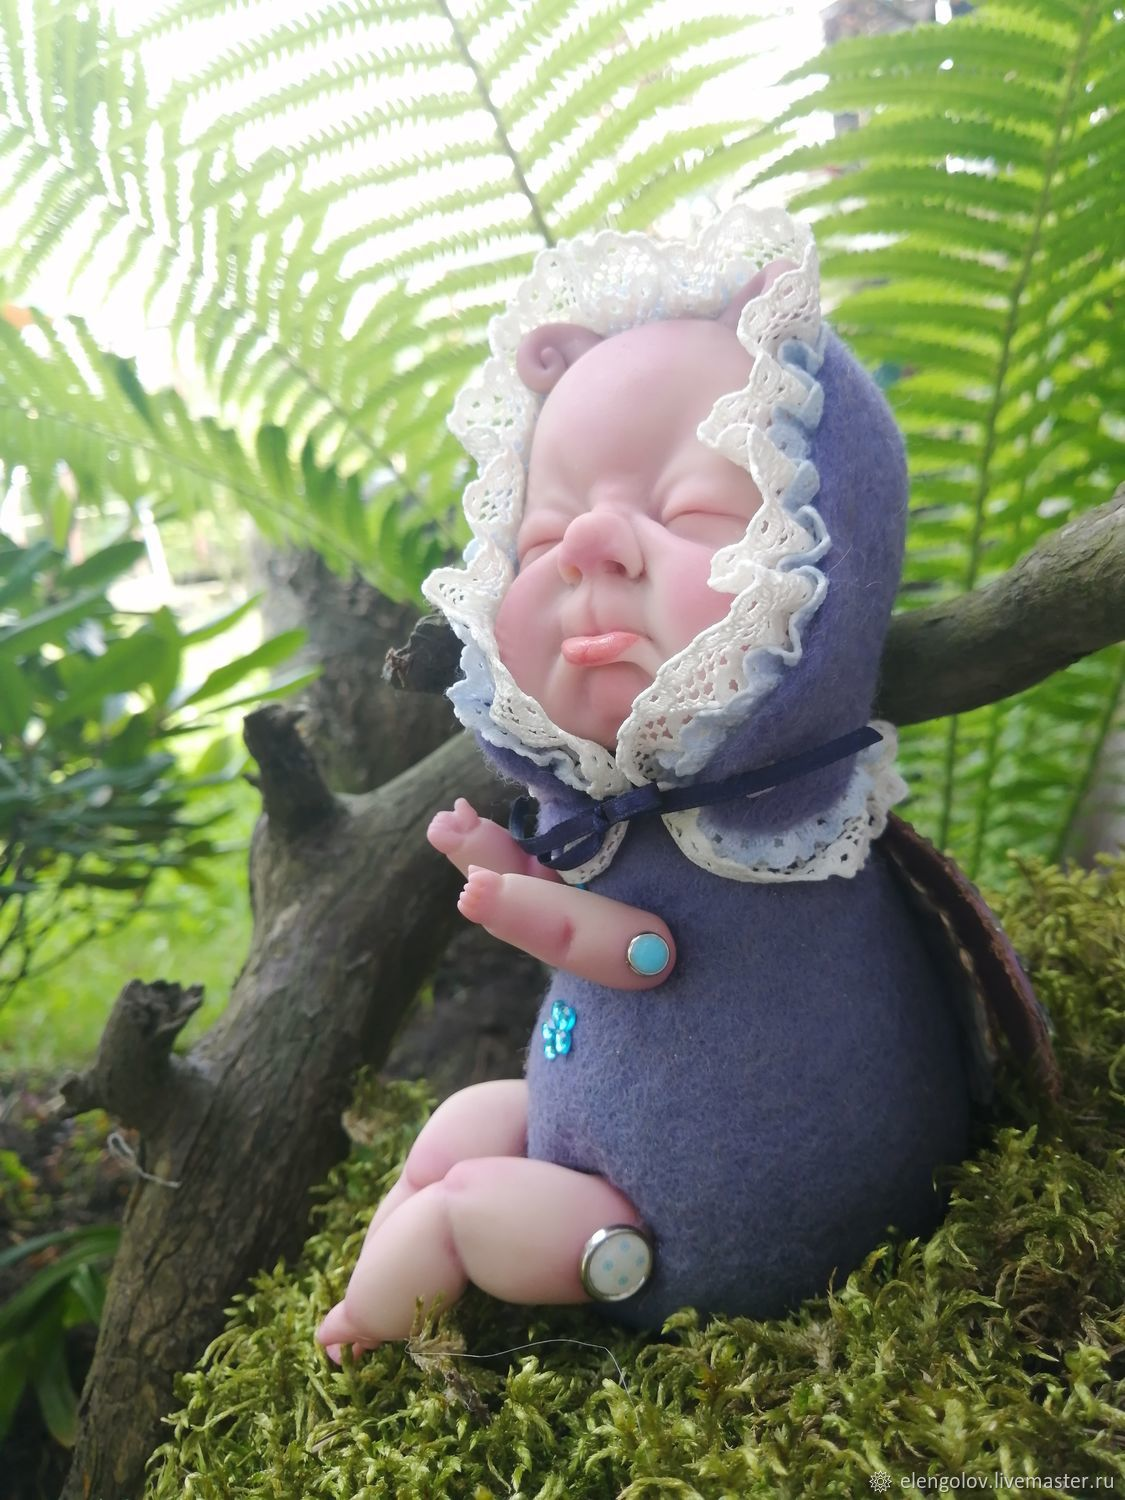 Interior DOLL made of POLYMER CLAY, Dolls, Moscow,  Фото №1